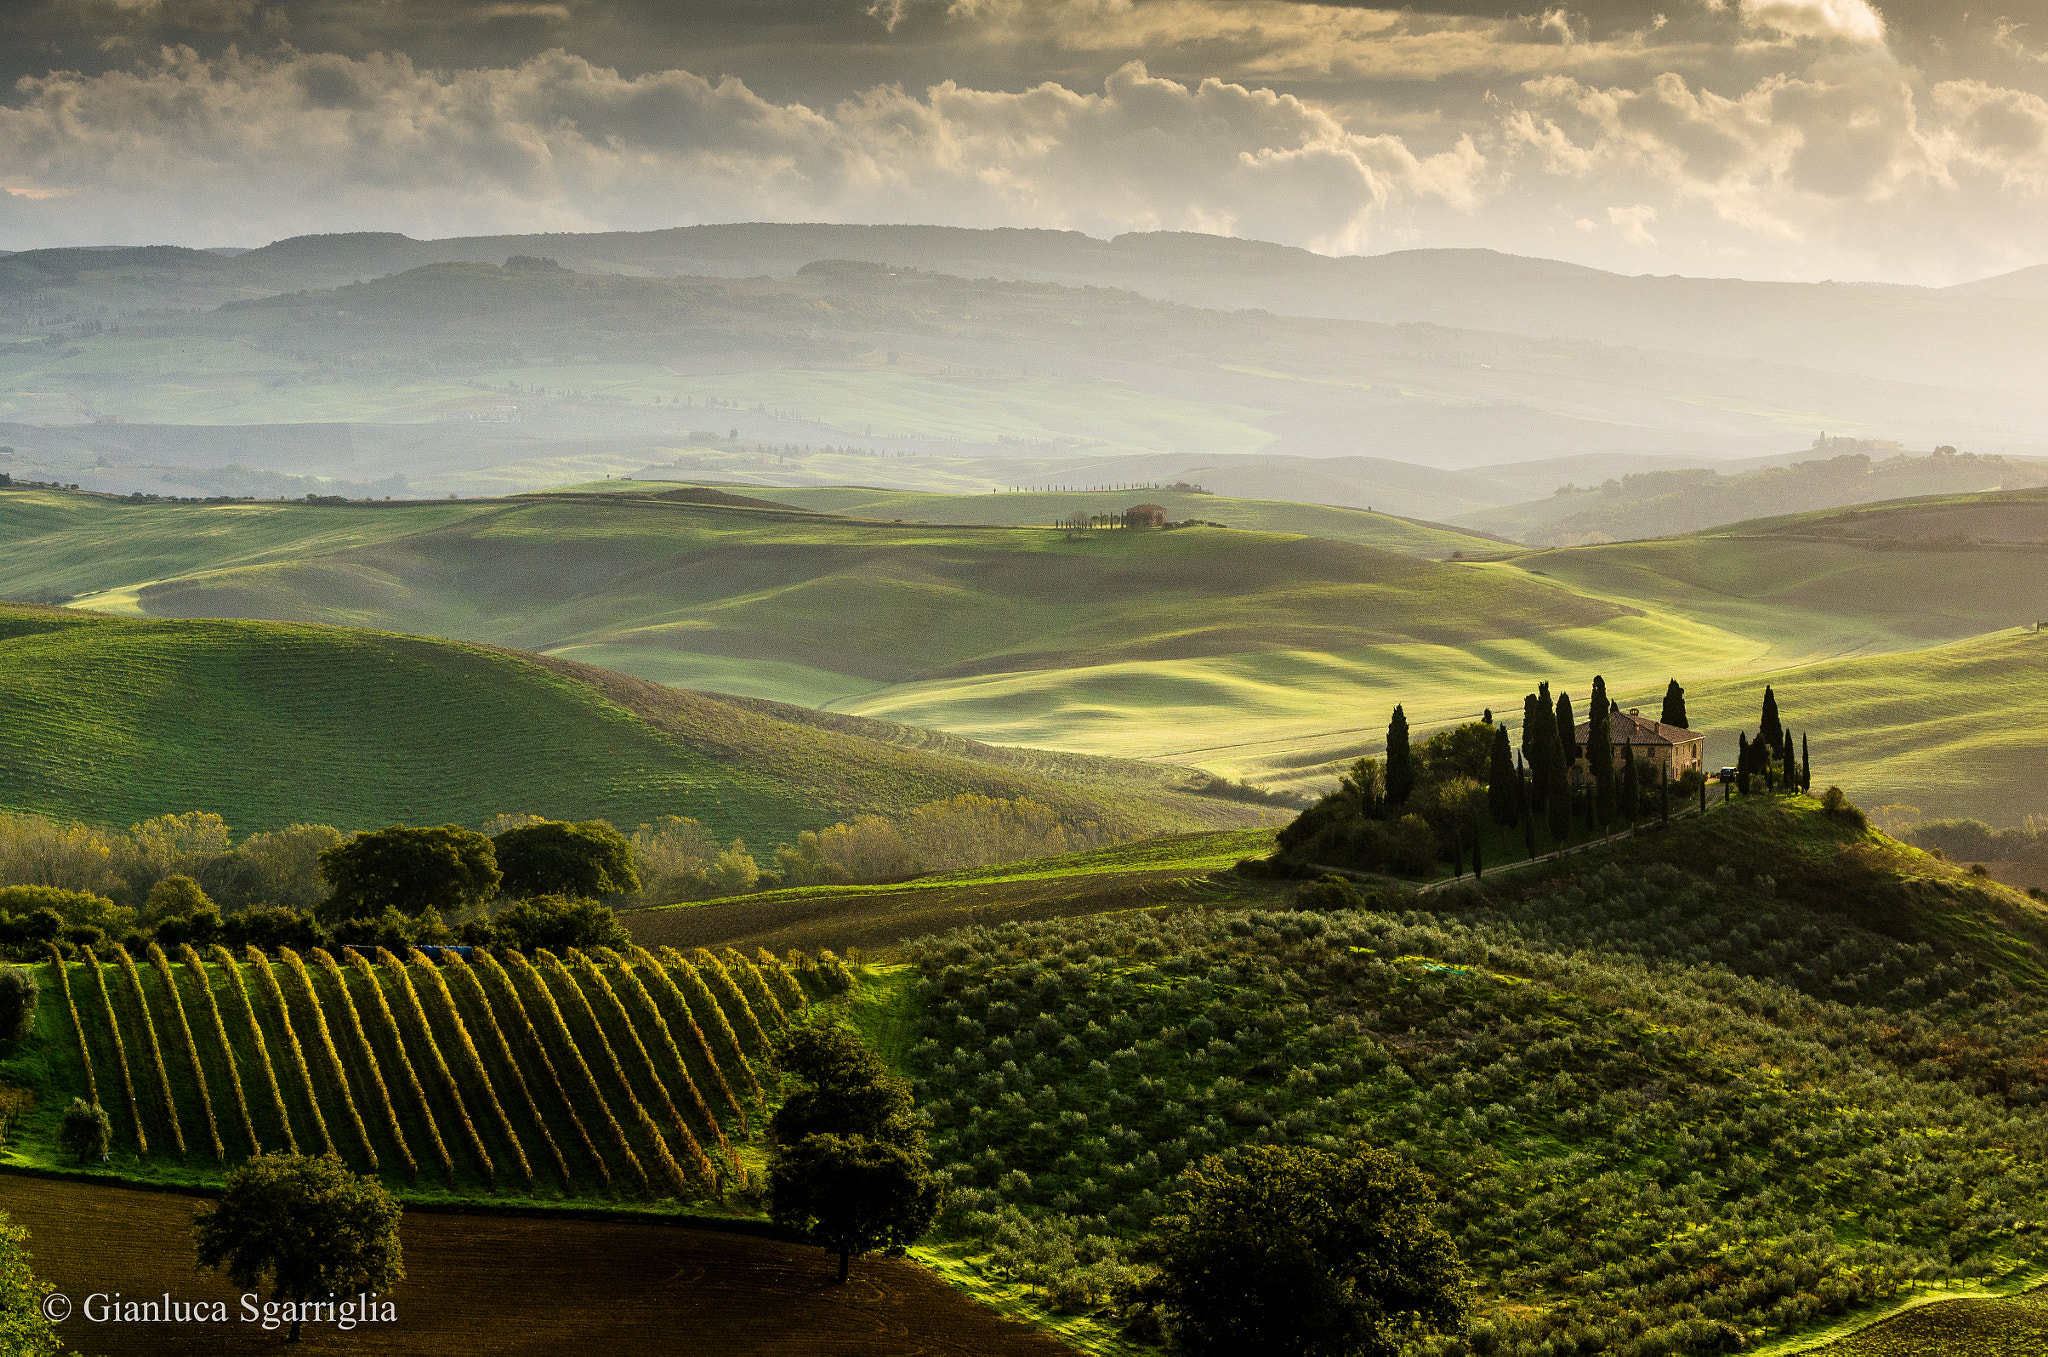 Photograph Podere Belvedere by Gianluca Sgarriglia on 500px